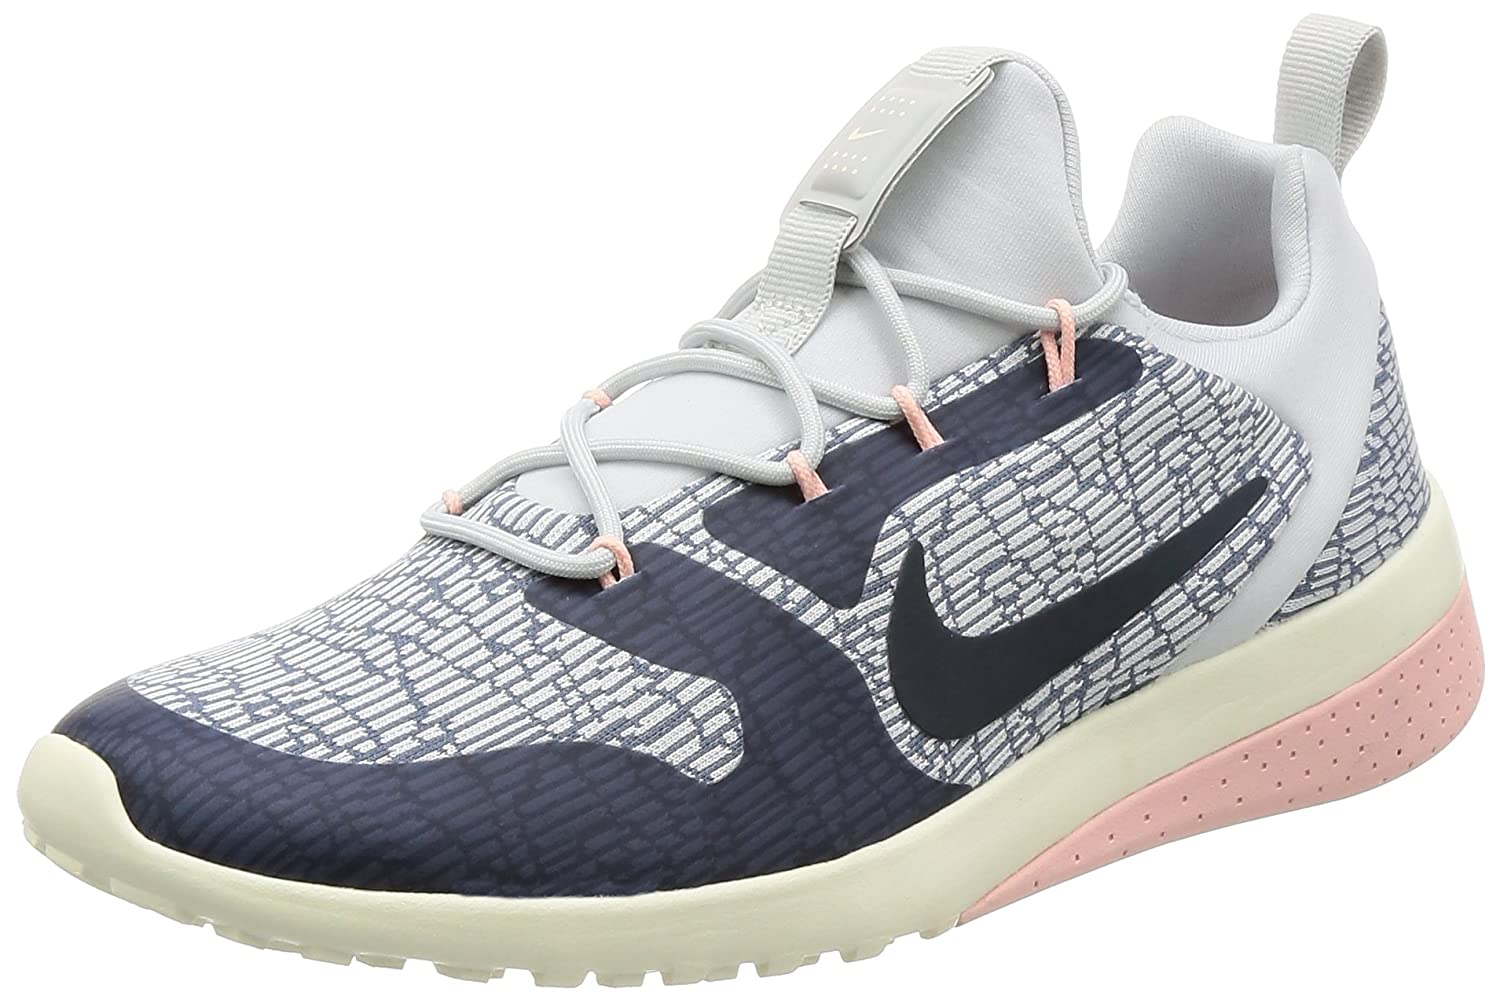 NIKE Air Zoom 90 Spikeless Golf Shoes 2017 Women B01M2AK3PS 9 B(M) US|Armory Blue/Armory Navy/Pure Platinum